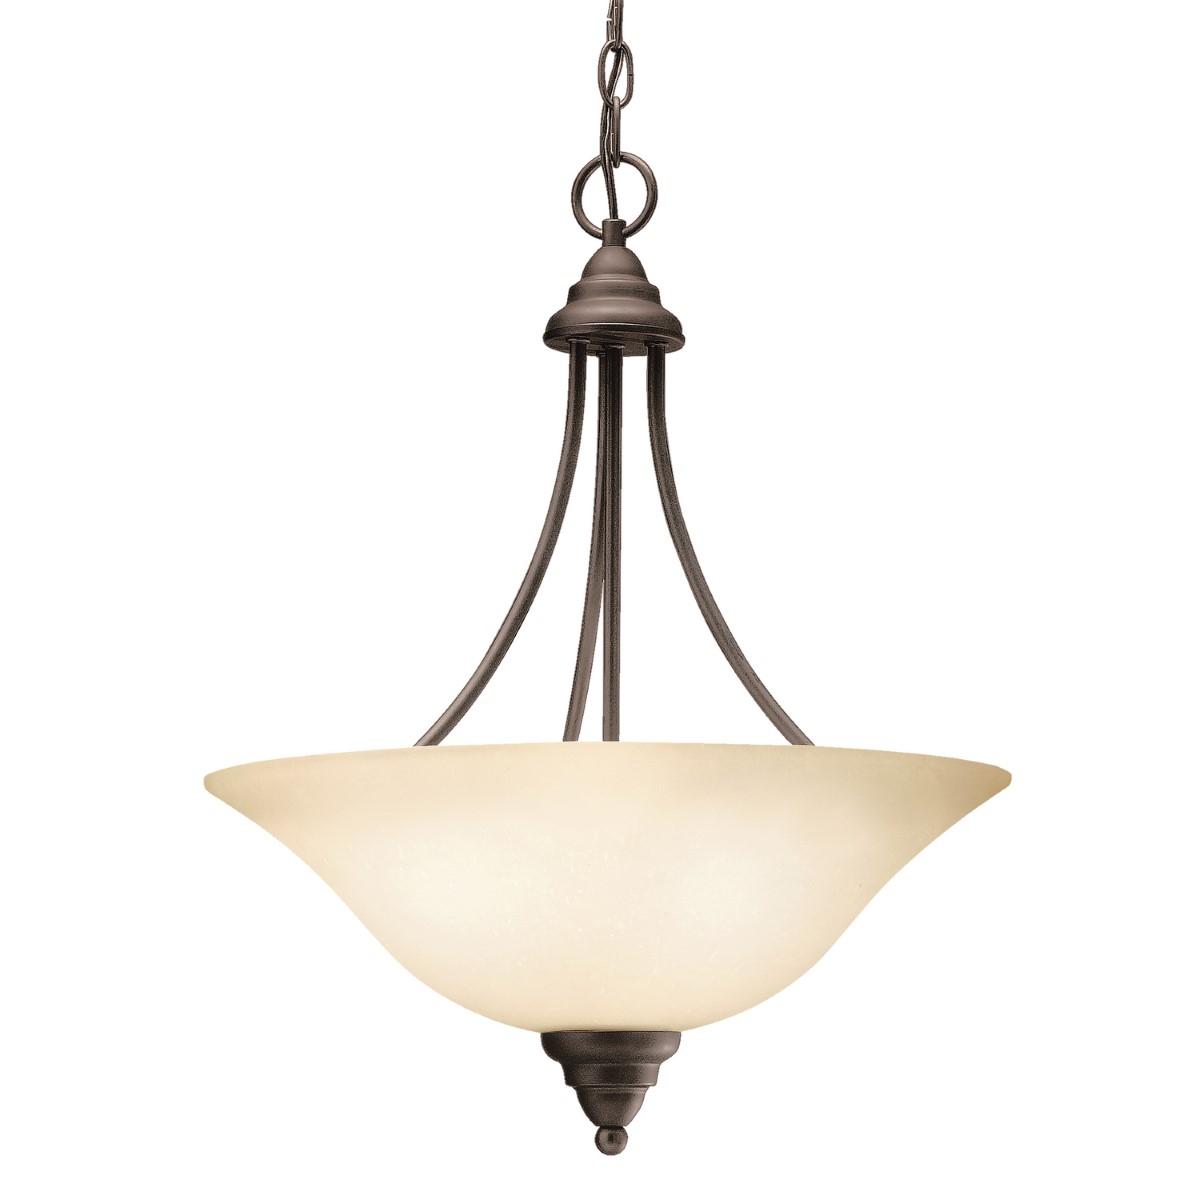 Kichler Telford Telford Pendant Light with Umber Etched Steel Shade - Olde Bronze (3277OZ)